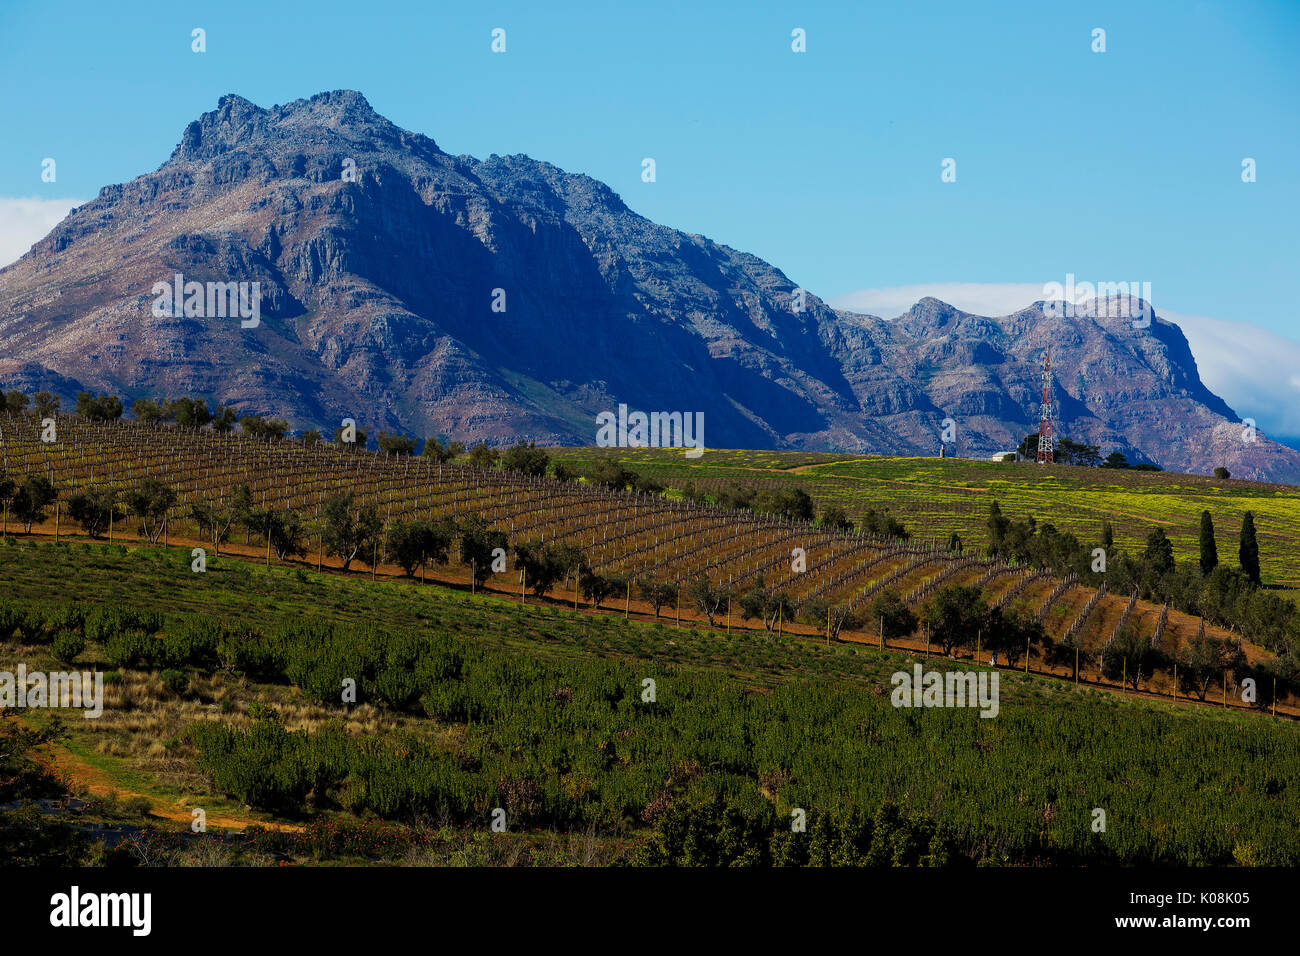 Vineyards at Stellenbosch with Stellenbosch mountains in the background, South Africa - Stock Image